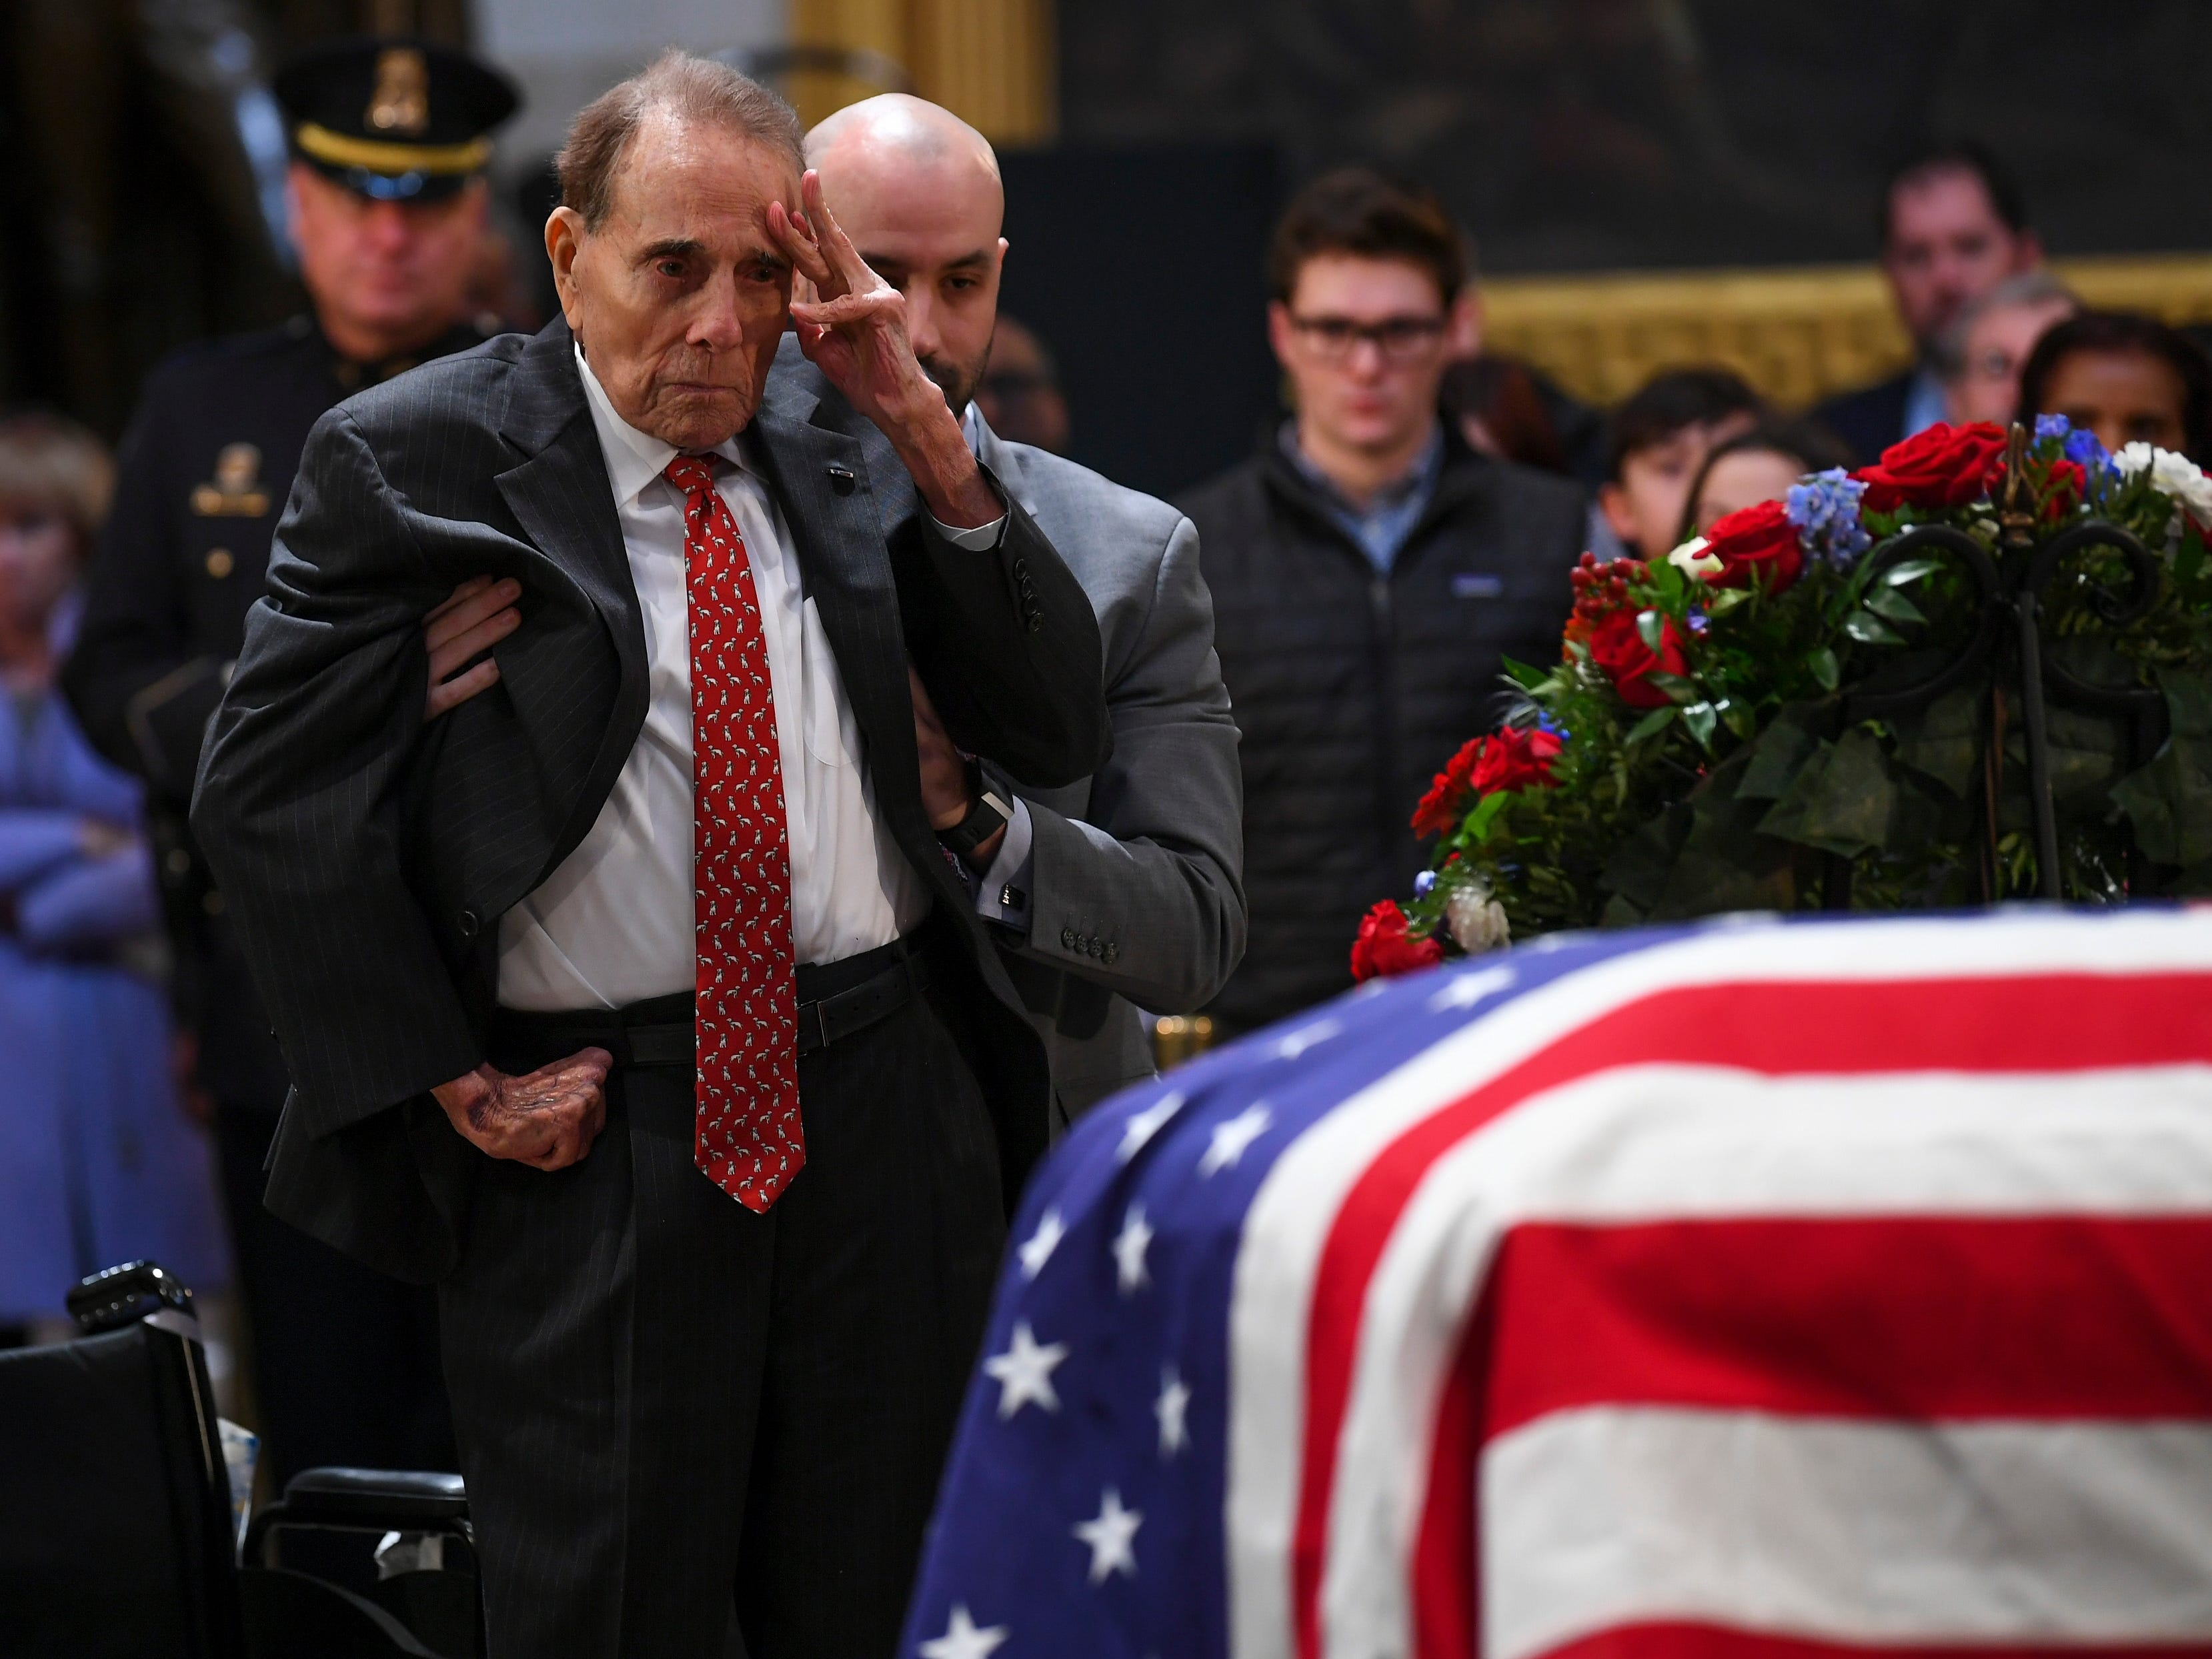 Bob Dole, with help, stands for final salute to George HW Bush at US Capitol